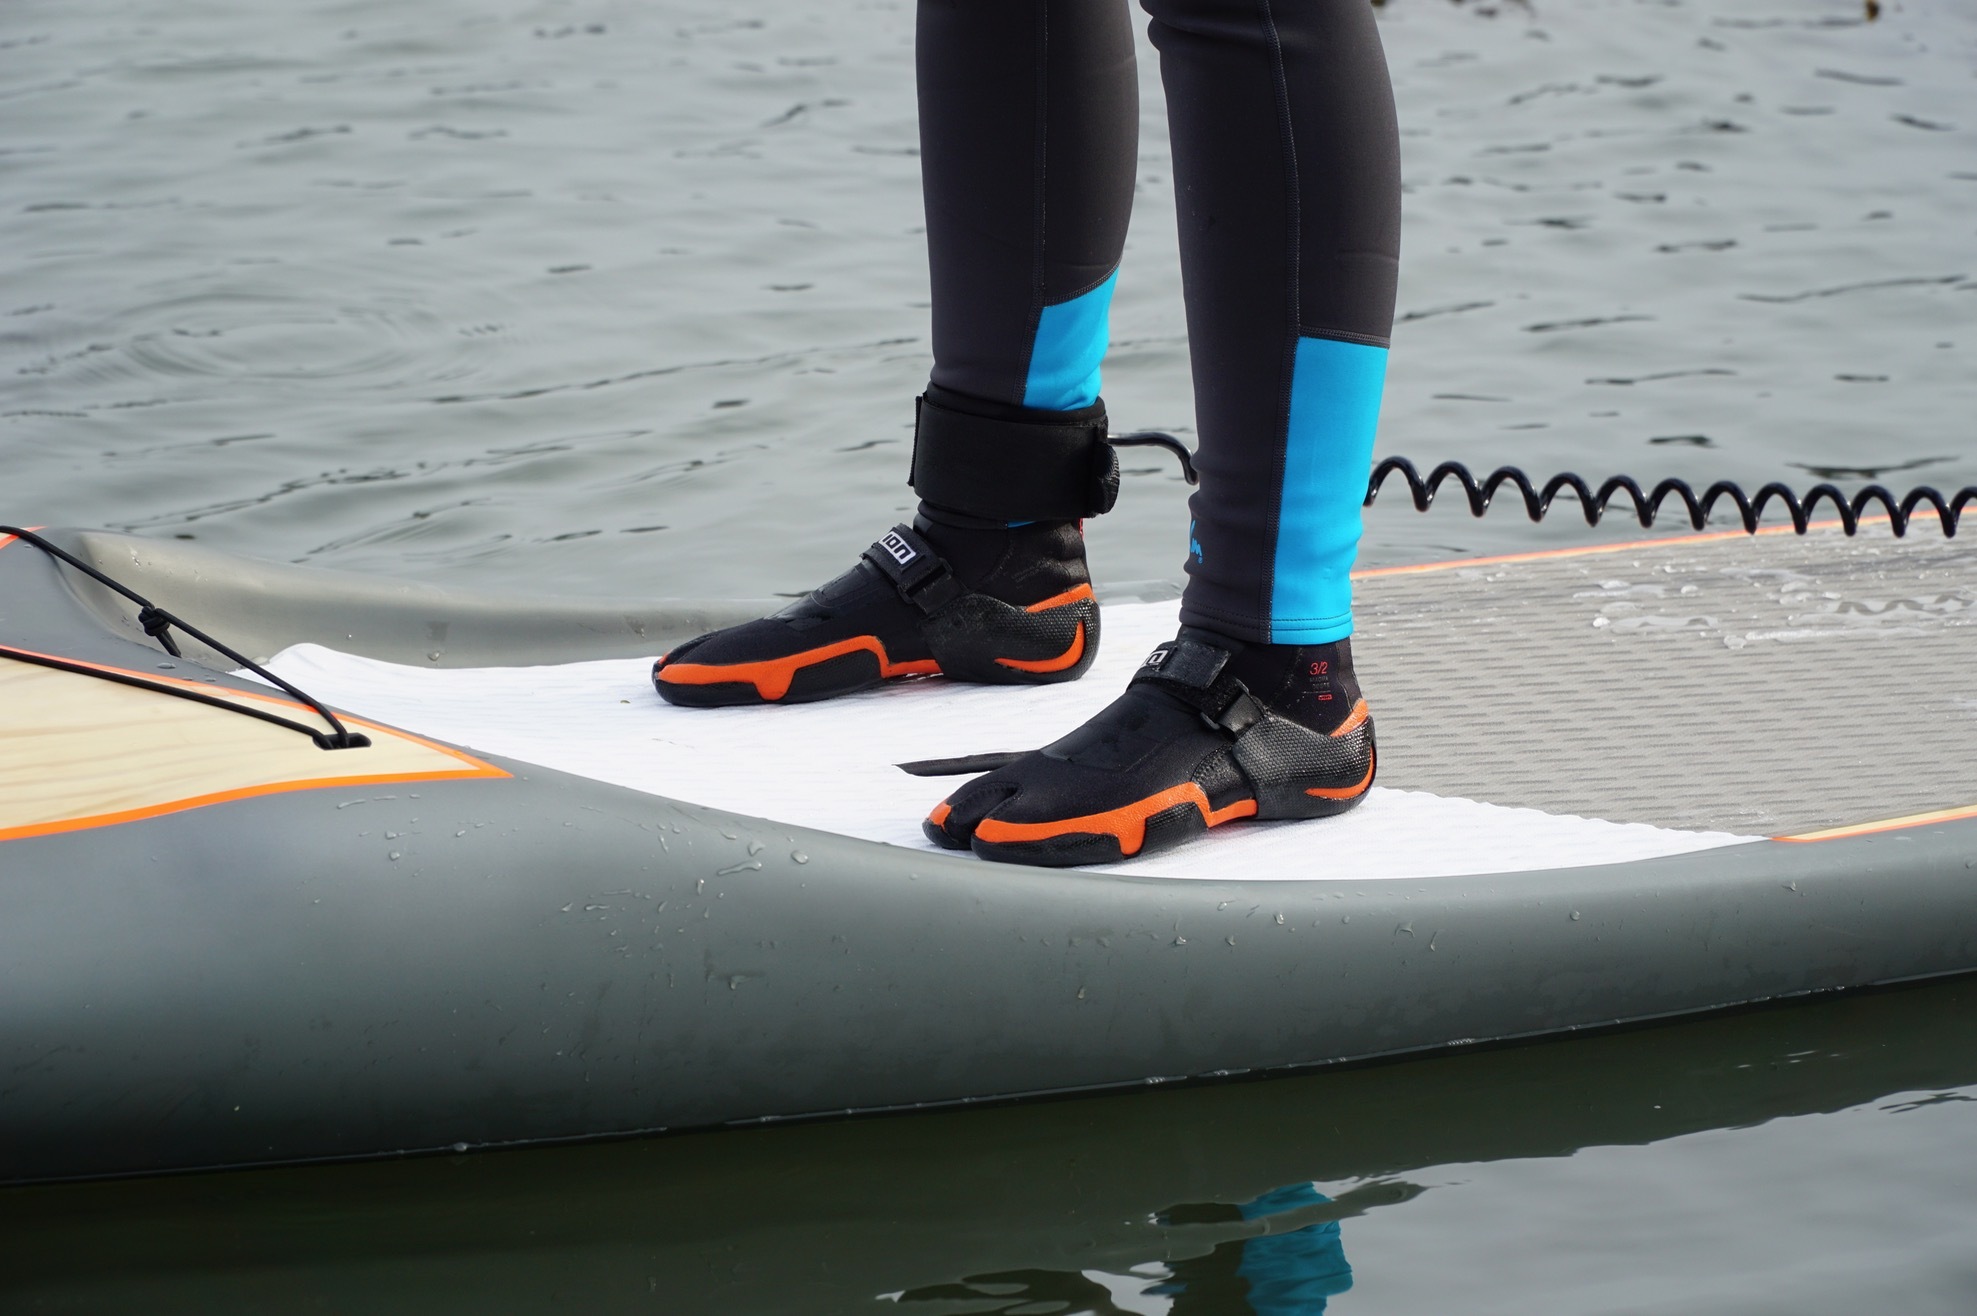 What to wear on your feet paddleboarding? - neoprene boots